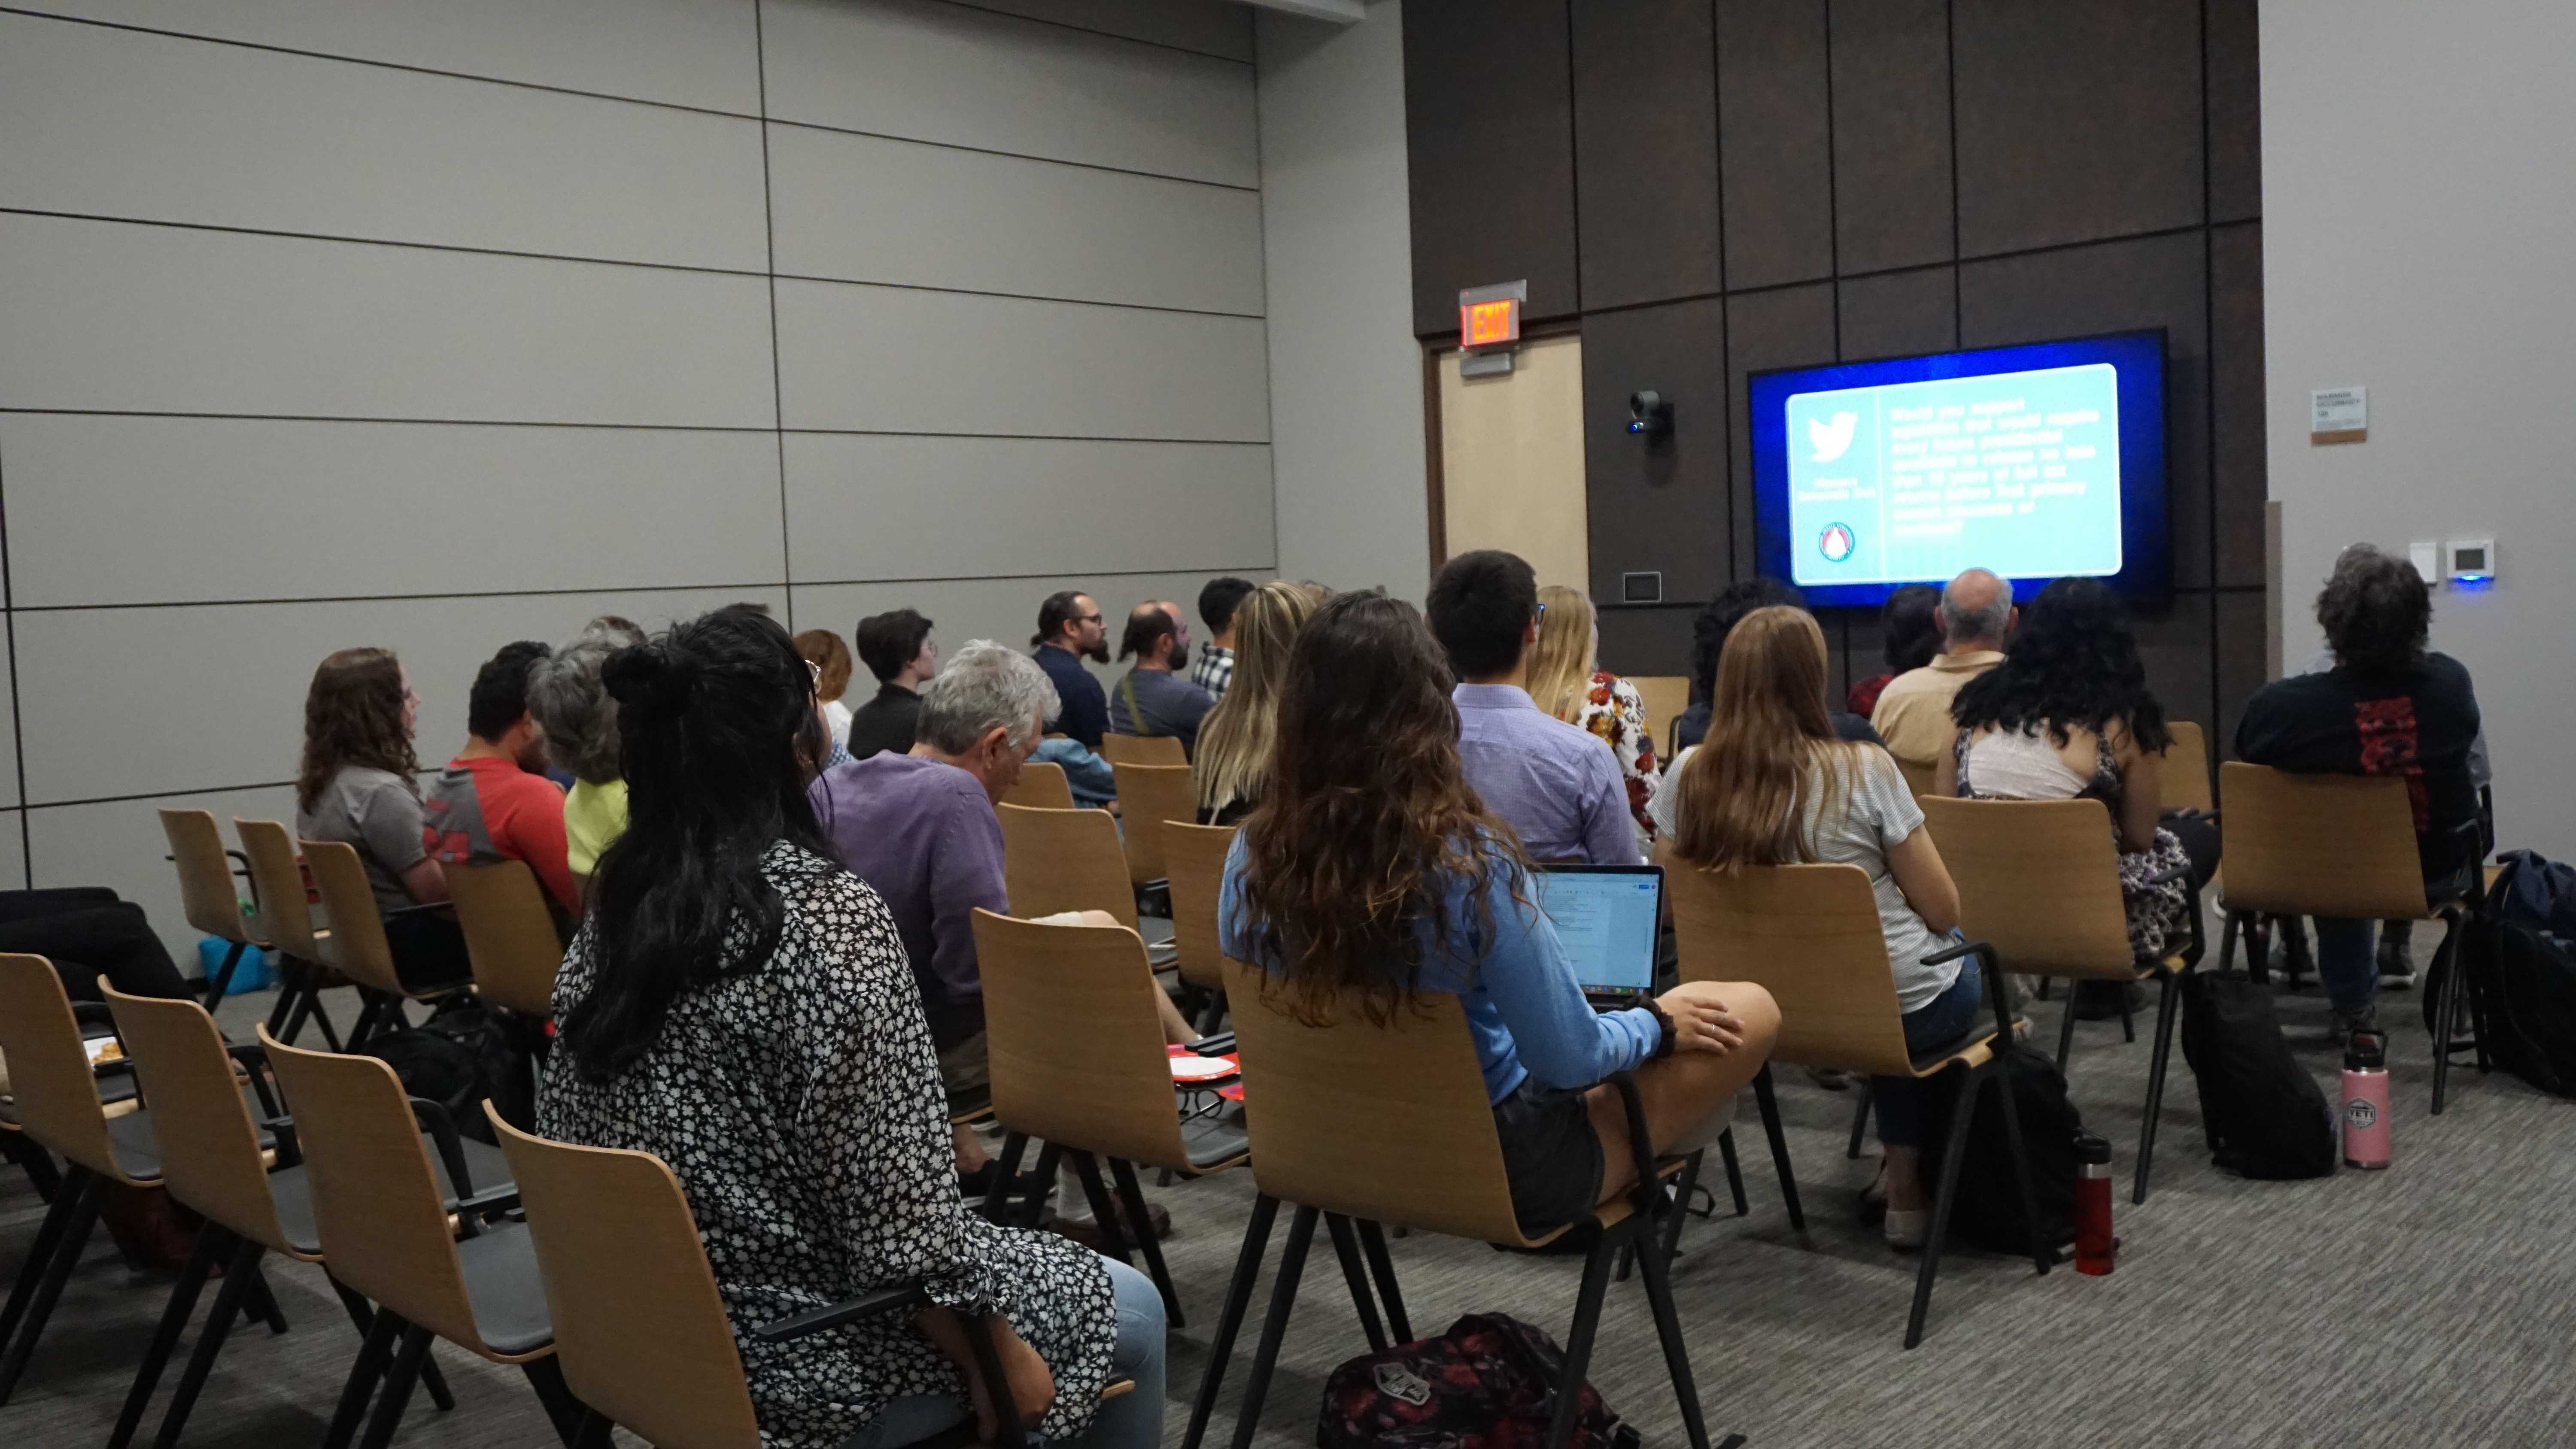 Students and community members watch a previous debate at the Hinckley Institute during the 2018 election season. Courtesy of Brooke Doner/Hinckley Institute.